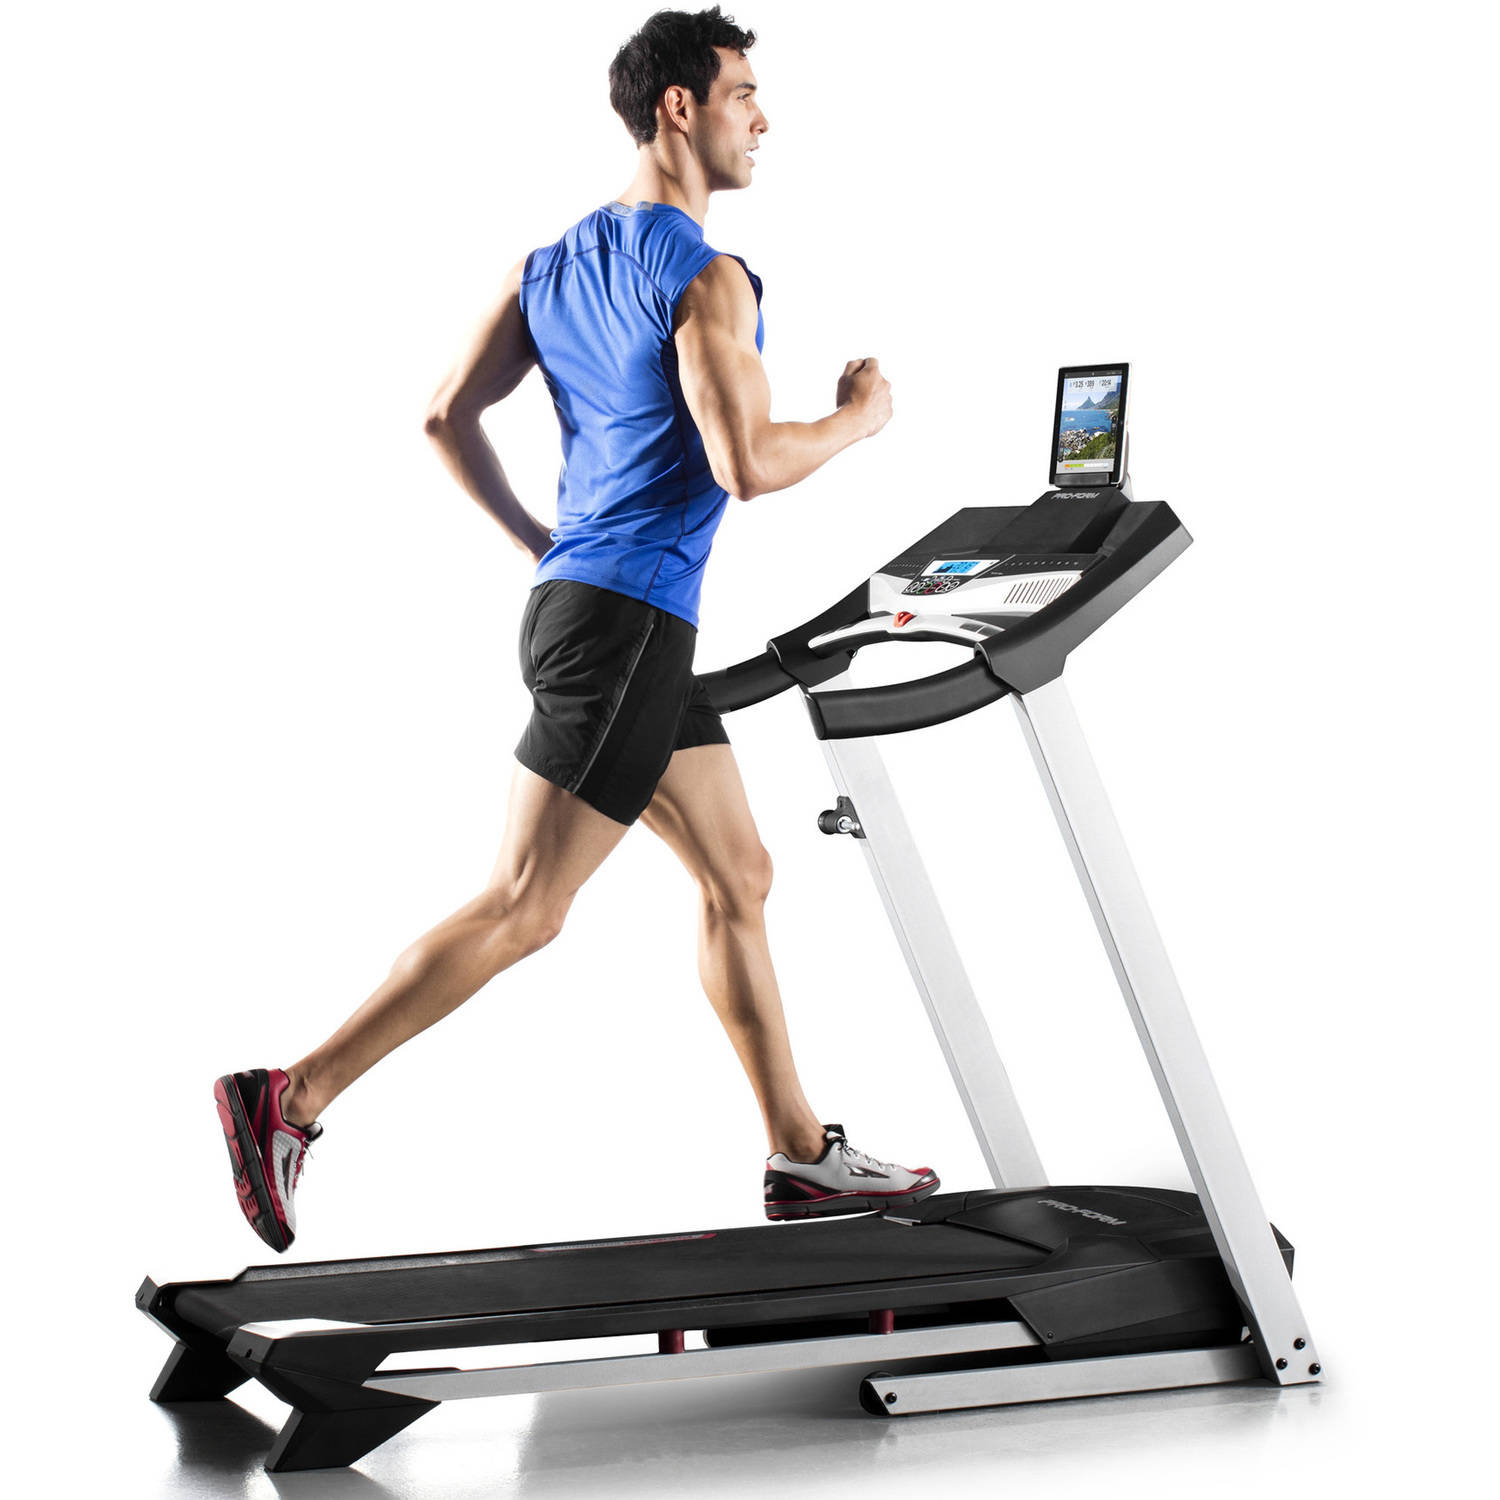 ProForm 305 CST Folding Treadmill with Power Incline and Cushioning by Icon Health & Fitness Inc.